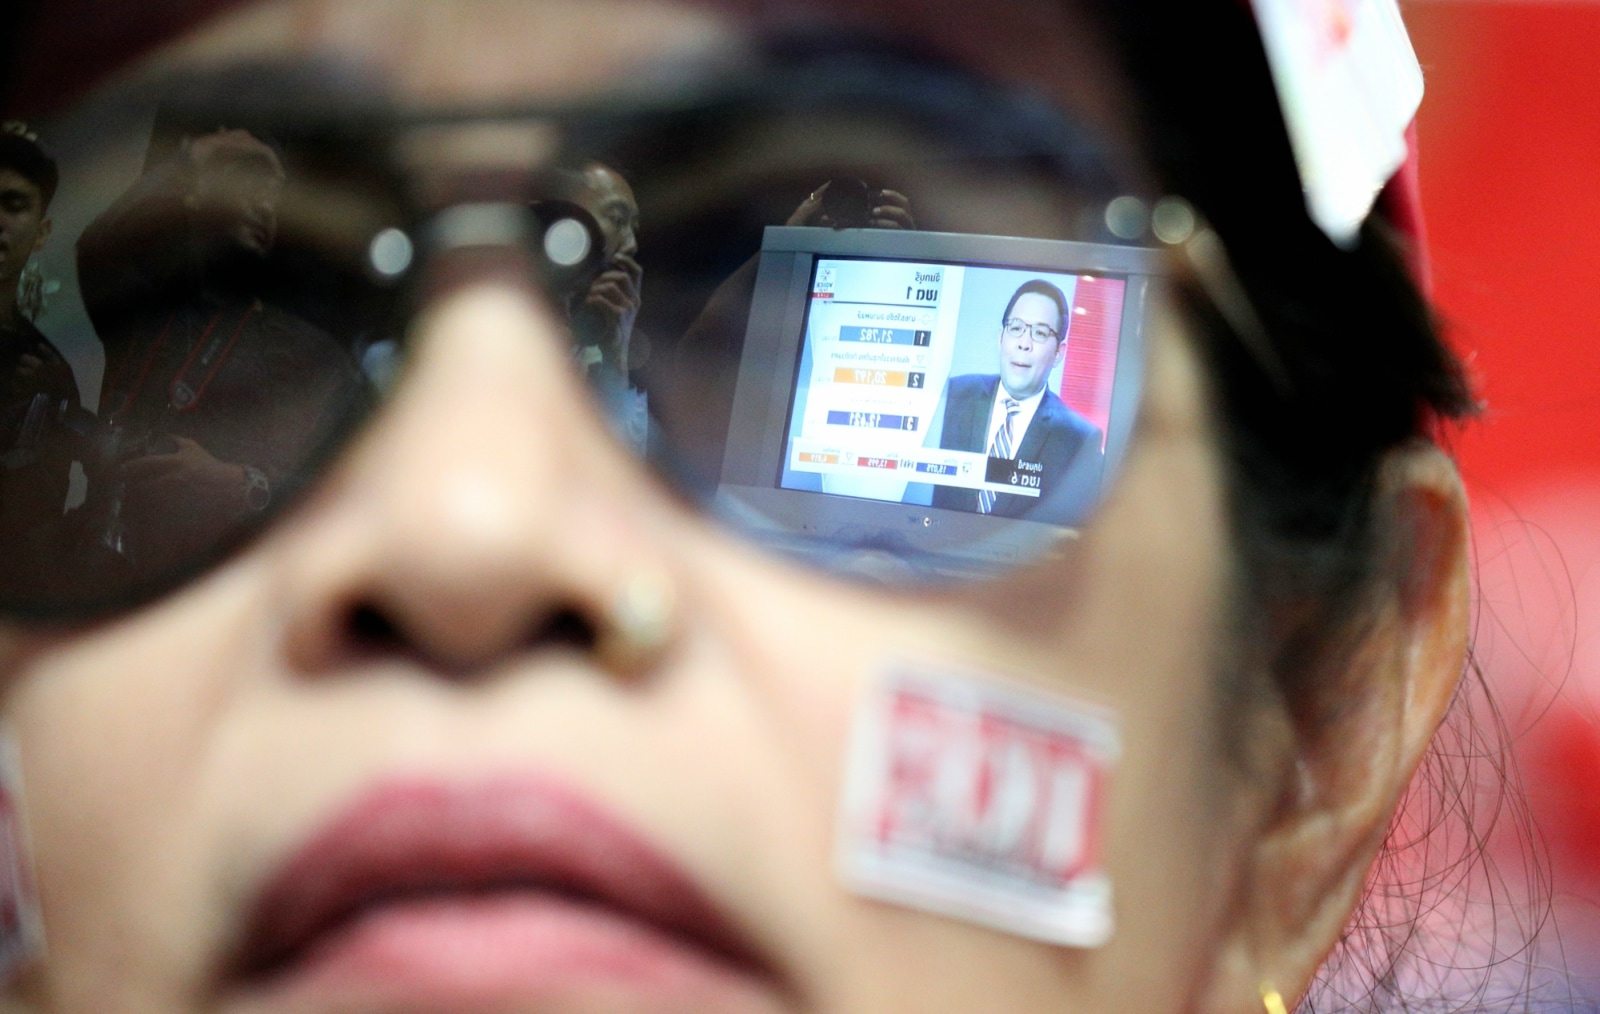 Live results are reflected in glasses of a supporter of Pheu Thai Party during the general election in Bangkok, Thailand, March 24, 2019. REUTERS/Athit Perawongmetha